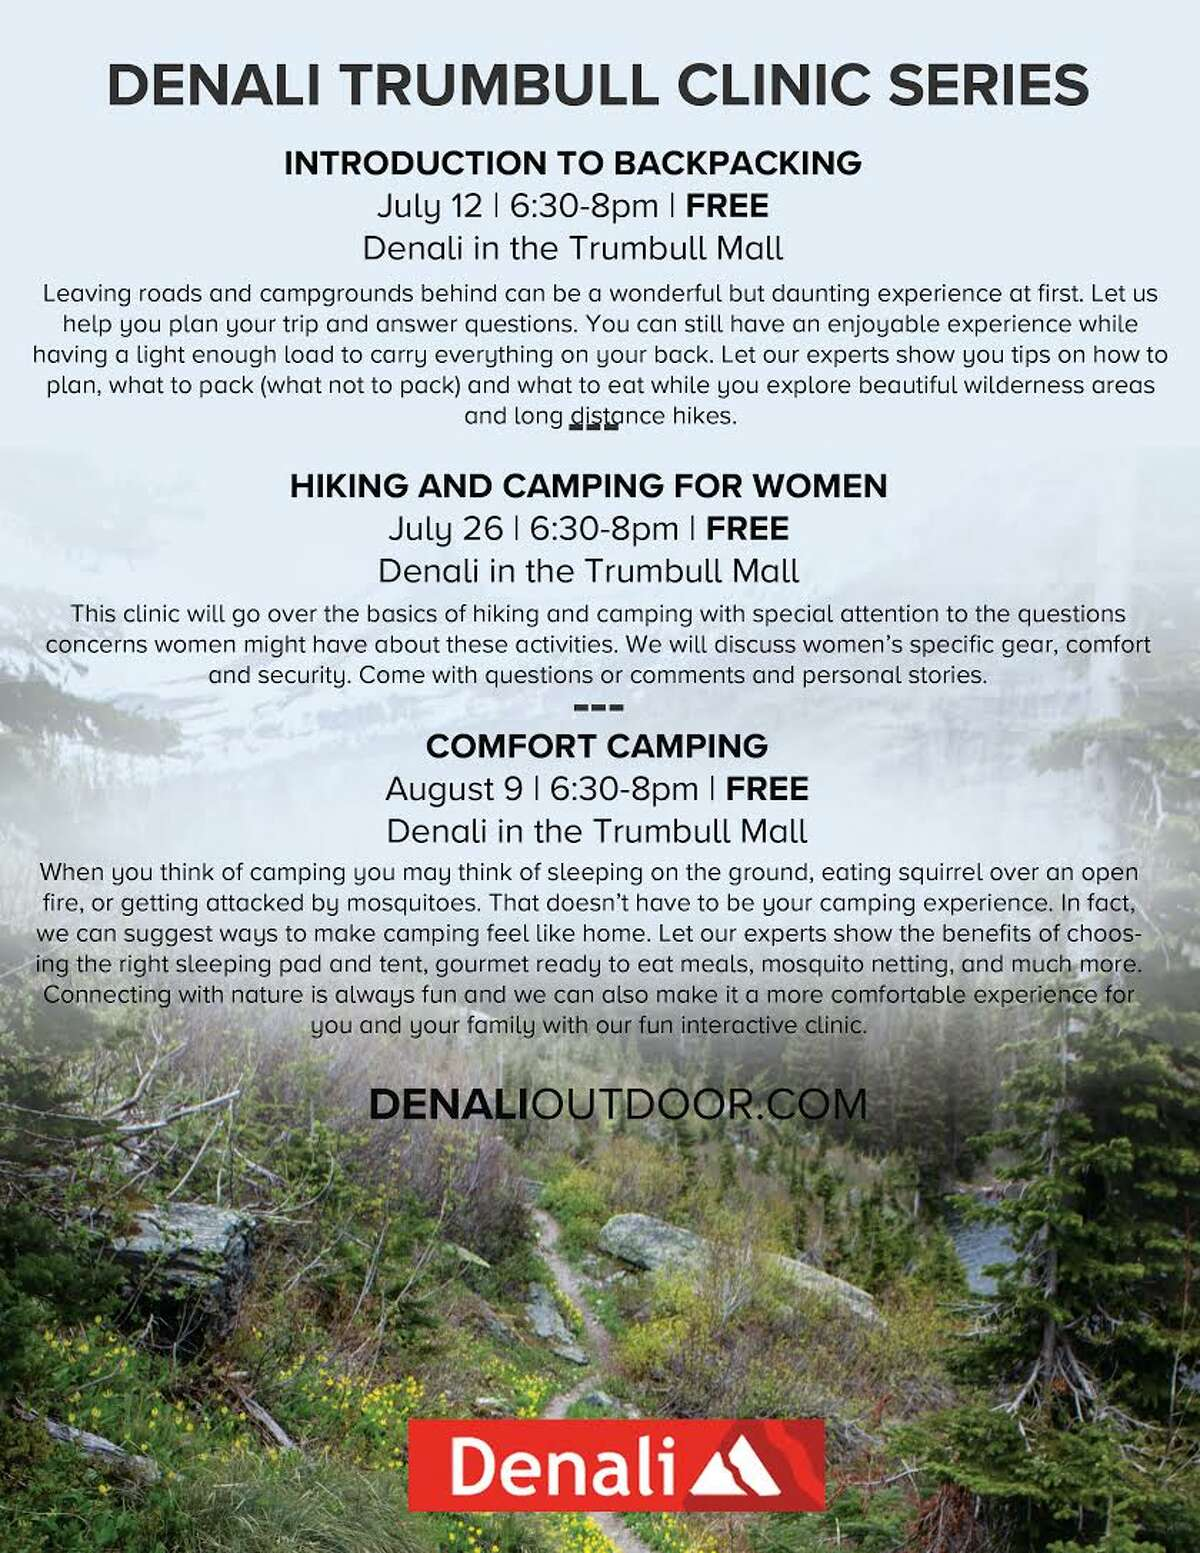 Denali Trumbull has announced a three-part clinic that will inspire shoppers to get into nature this summer.